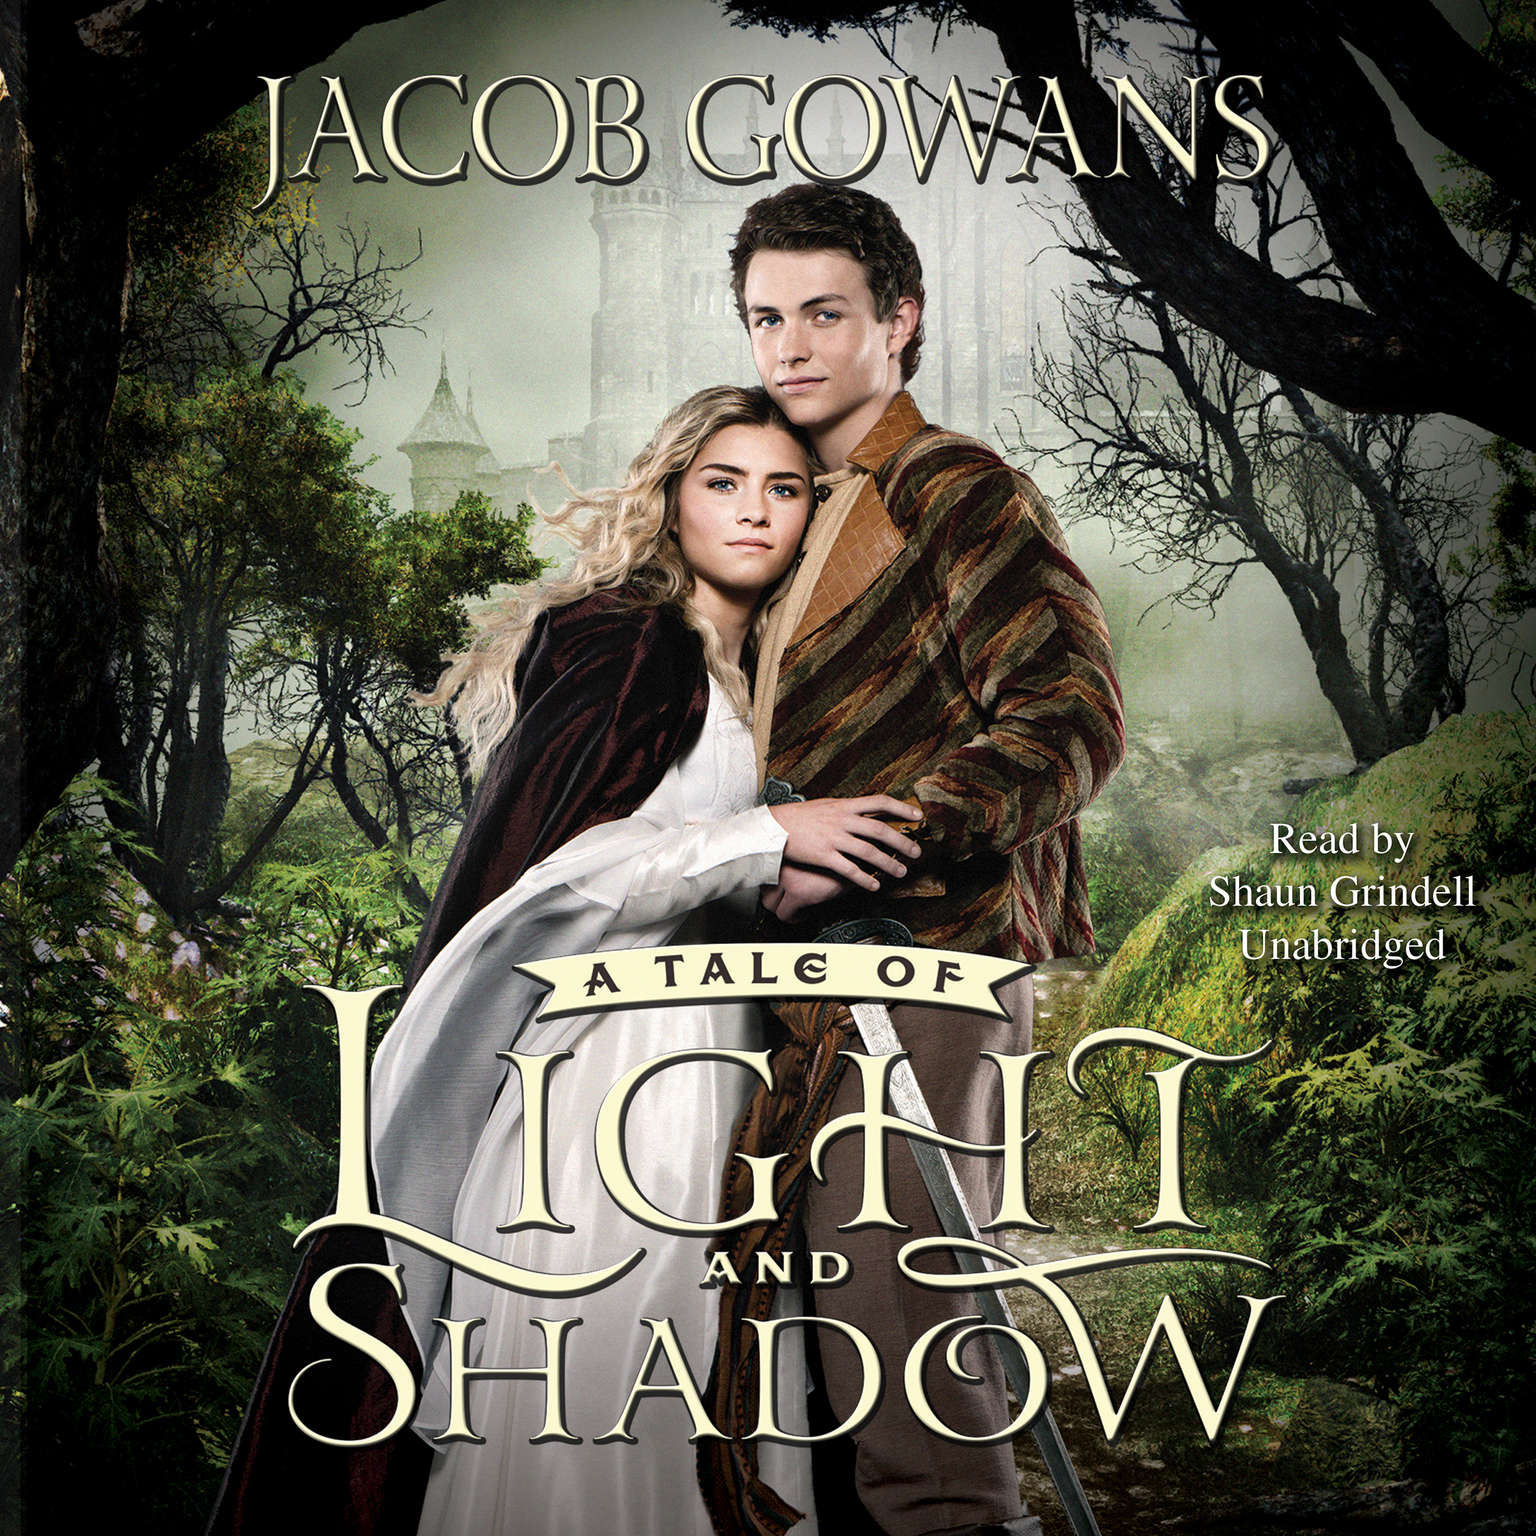 A Tale of Light and Shadow Audiobook, by Jacob Gowans